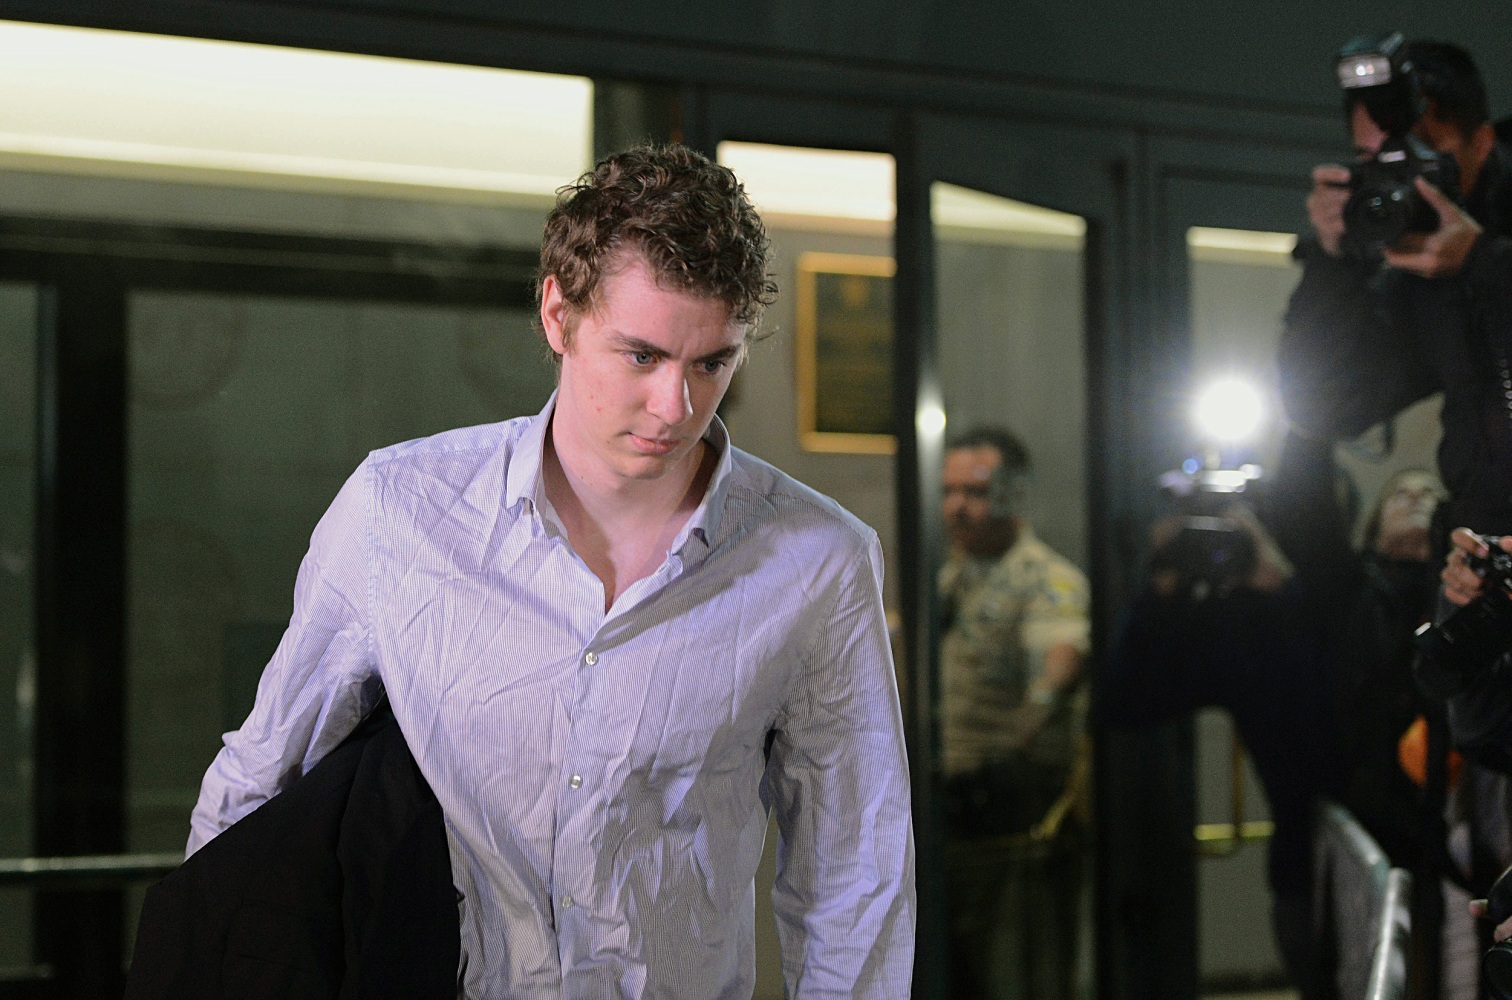 Brock Turner's shocking appeal to overturn his rape conviction